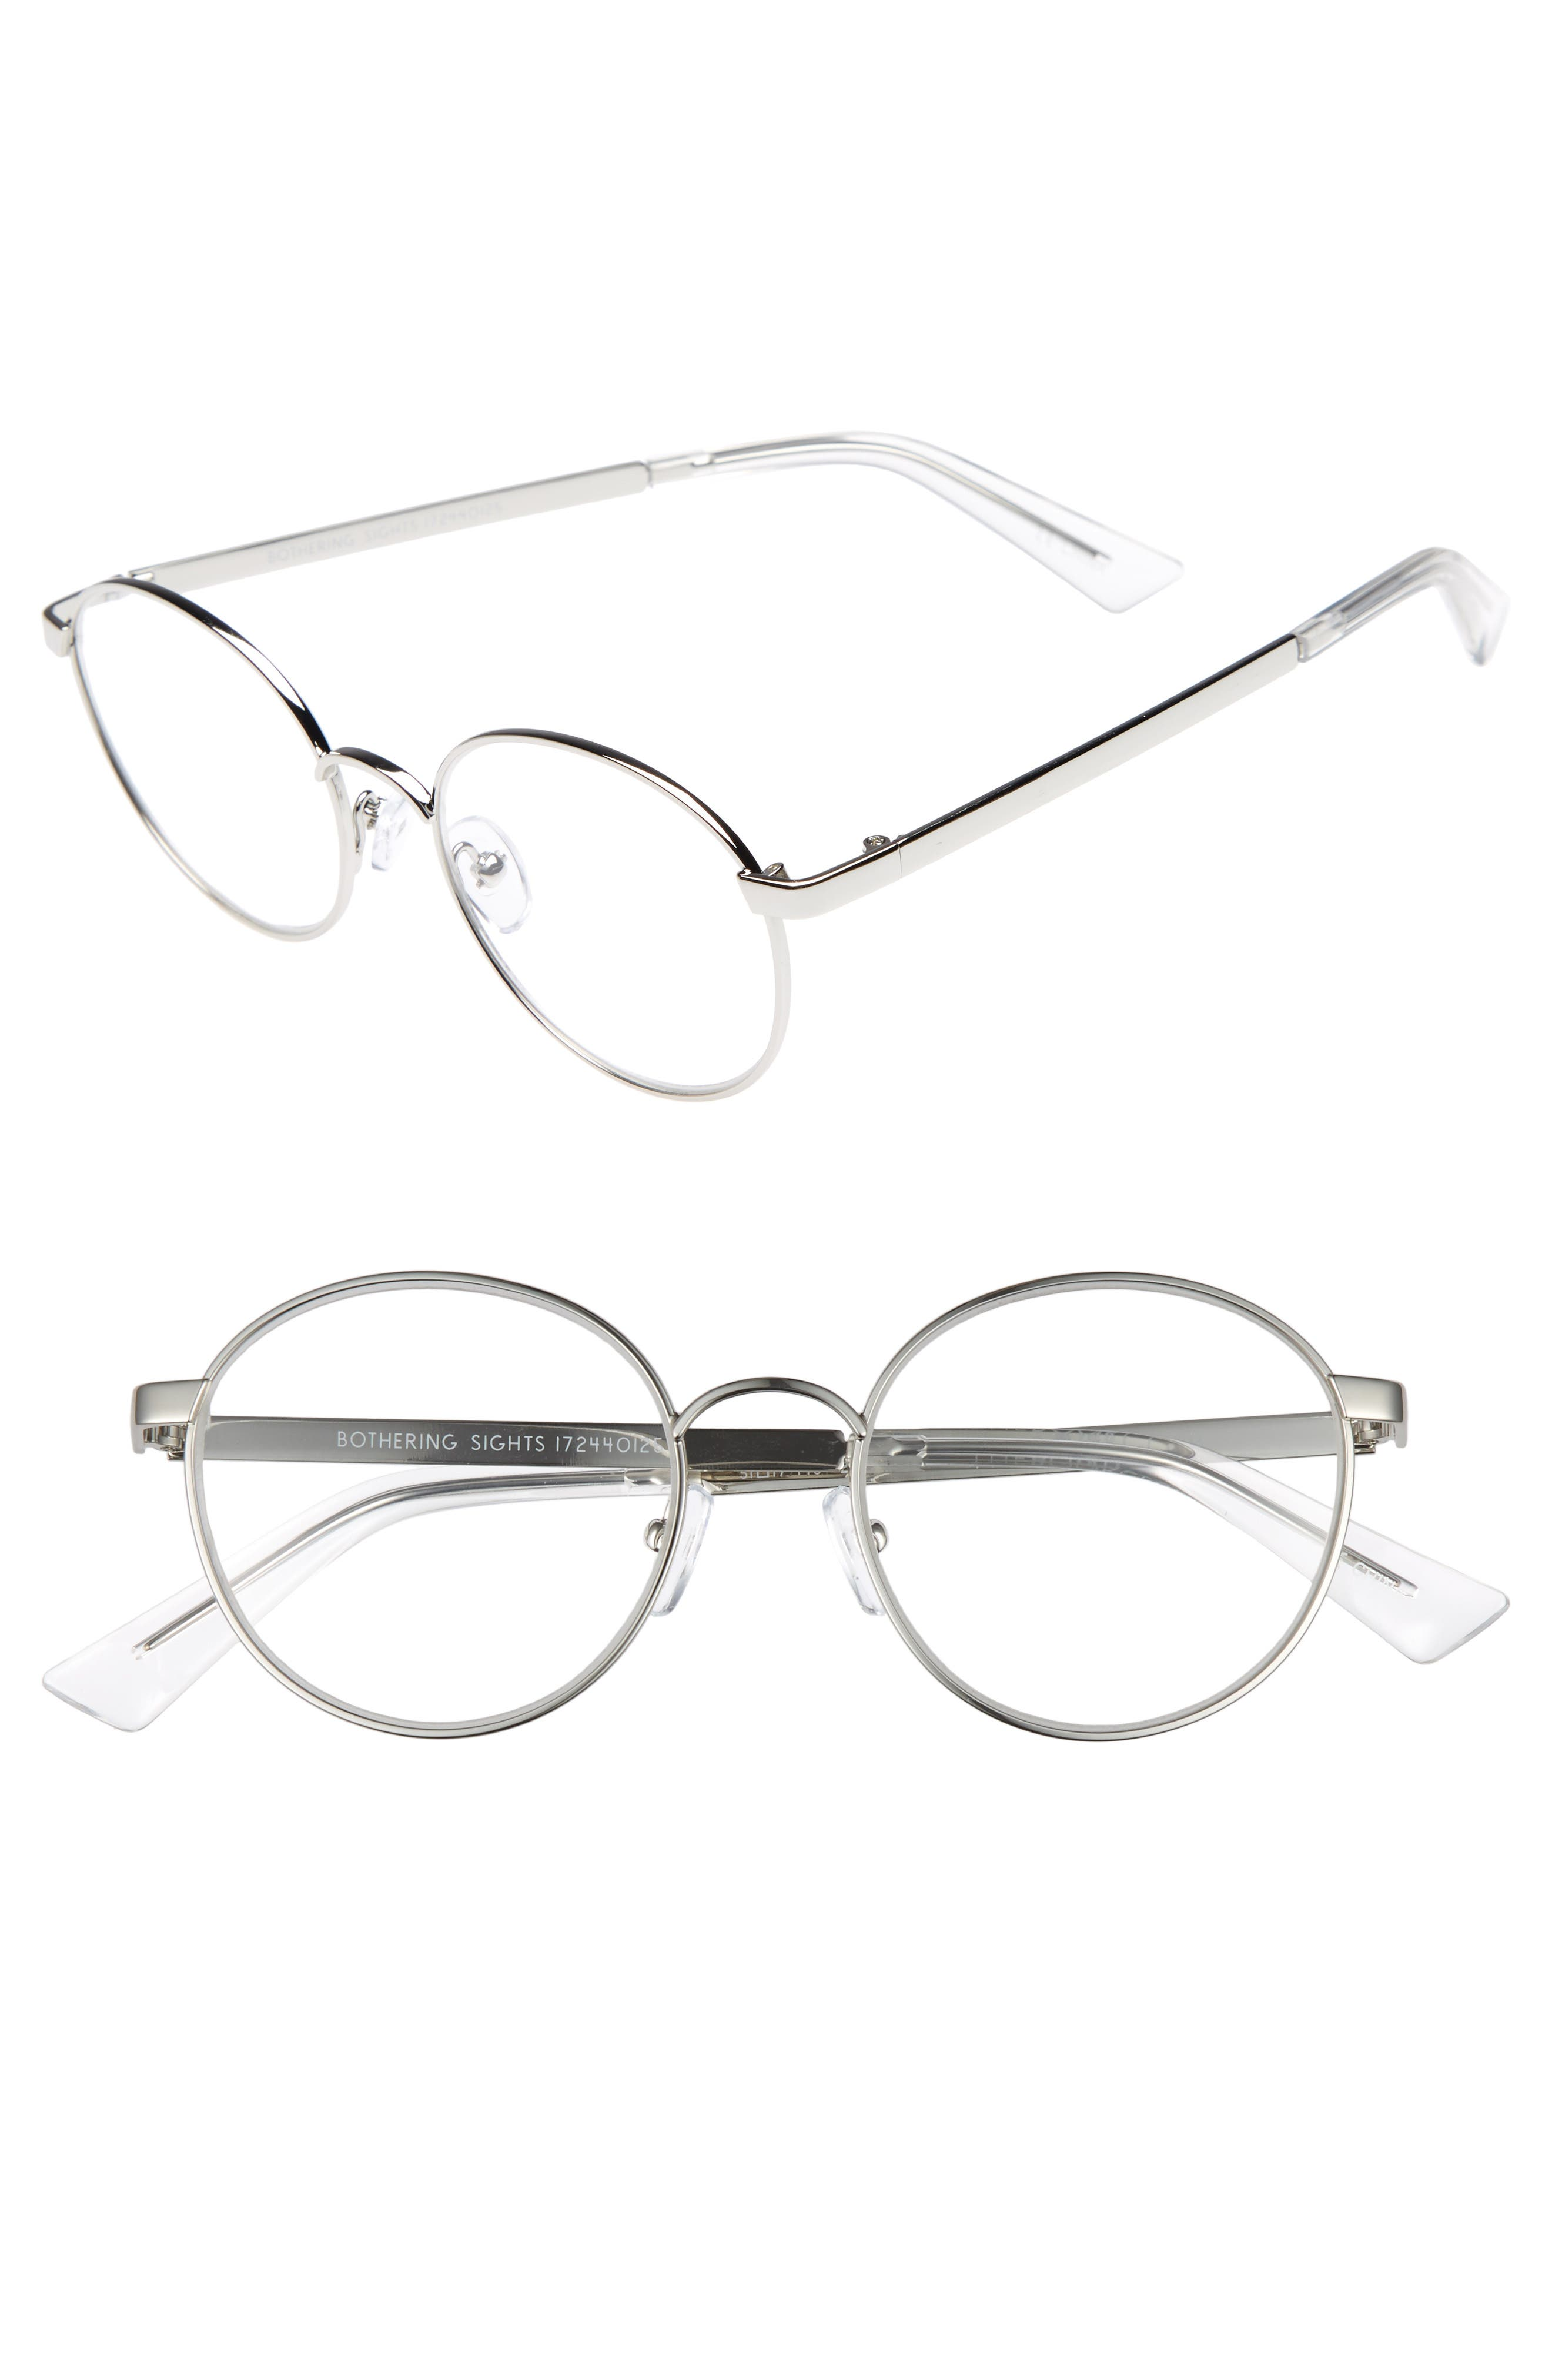 Bothering Sights 51mm Reading Glasses,                         Main,                         color, Silver/ Cellophane